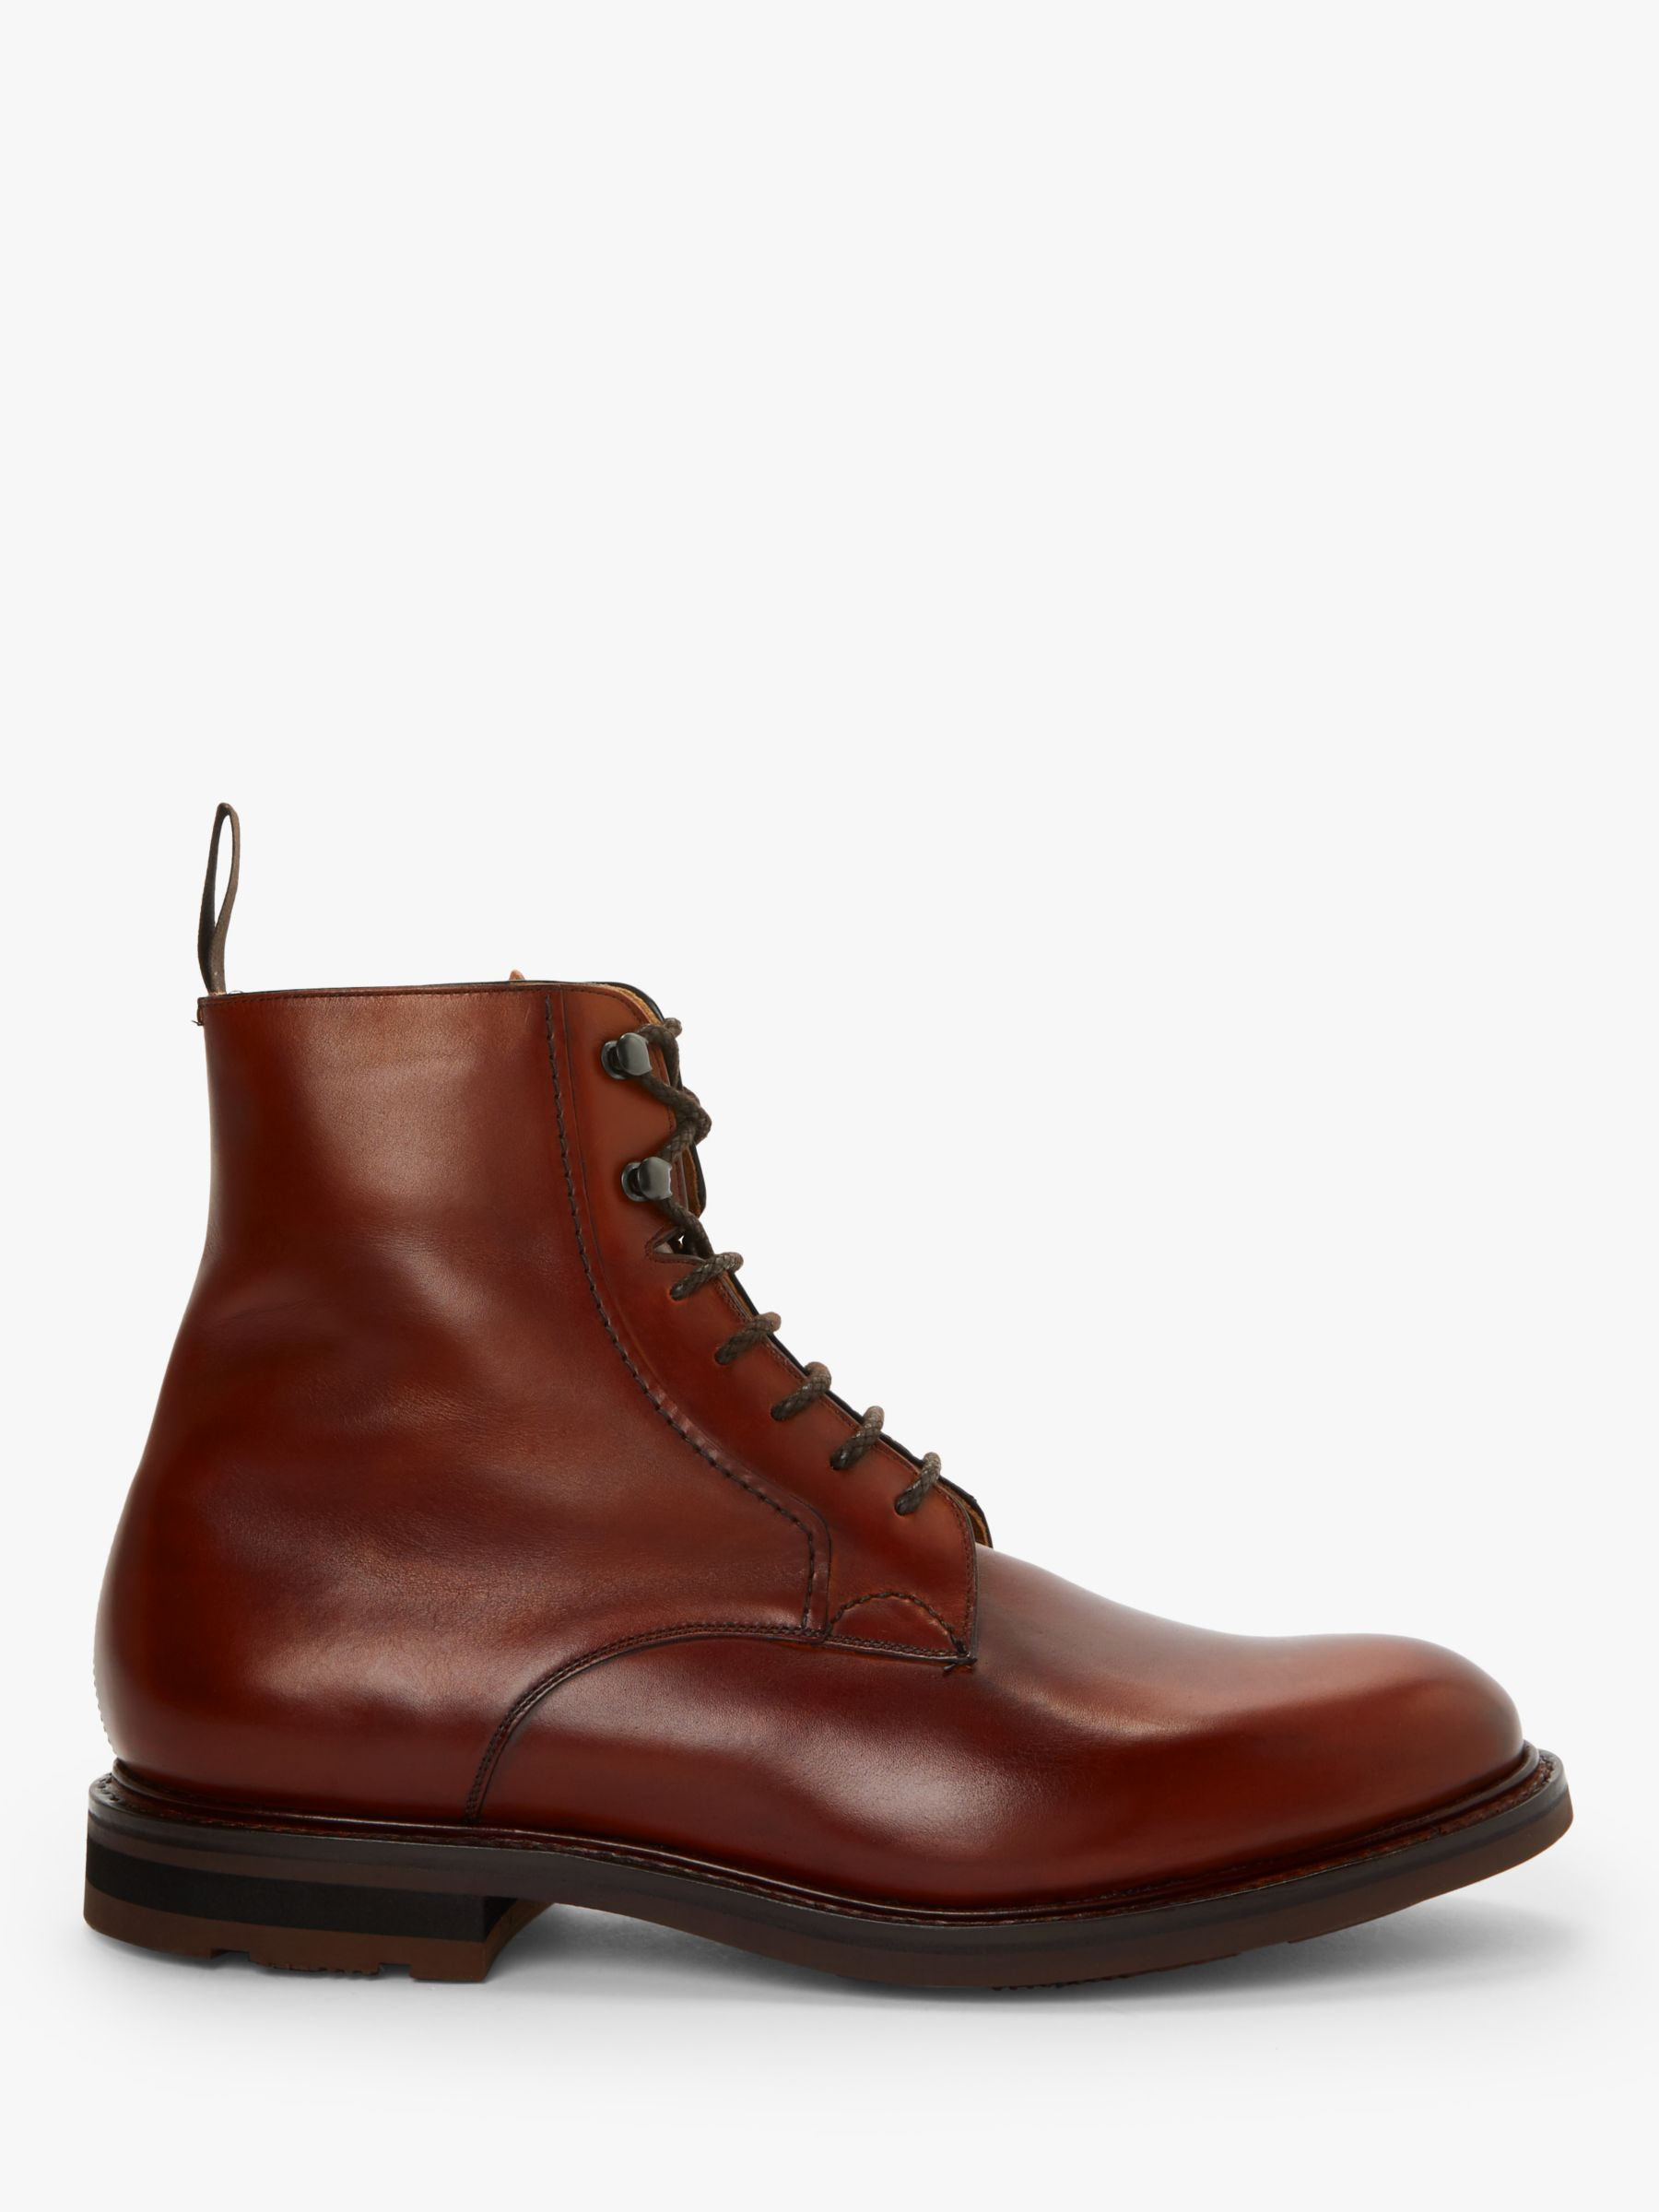 Church's Church's Wootton Lace Up Boot, Brandy